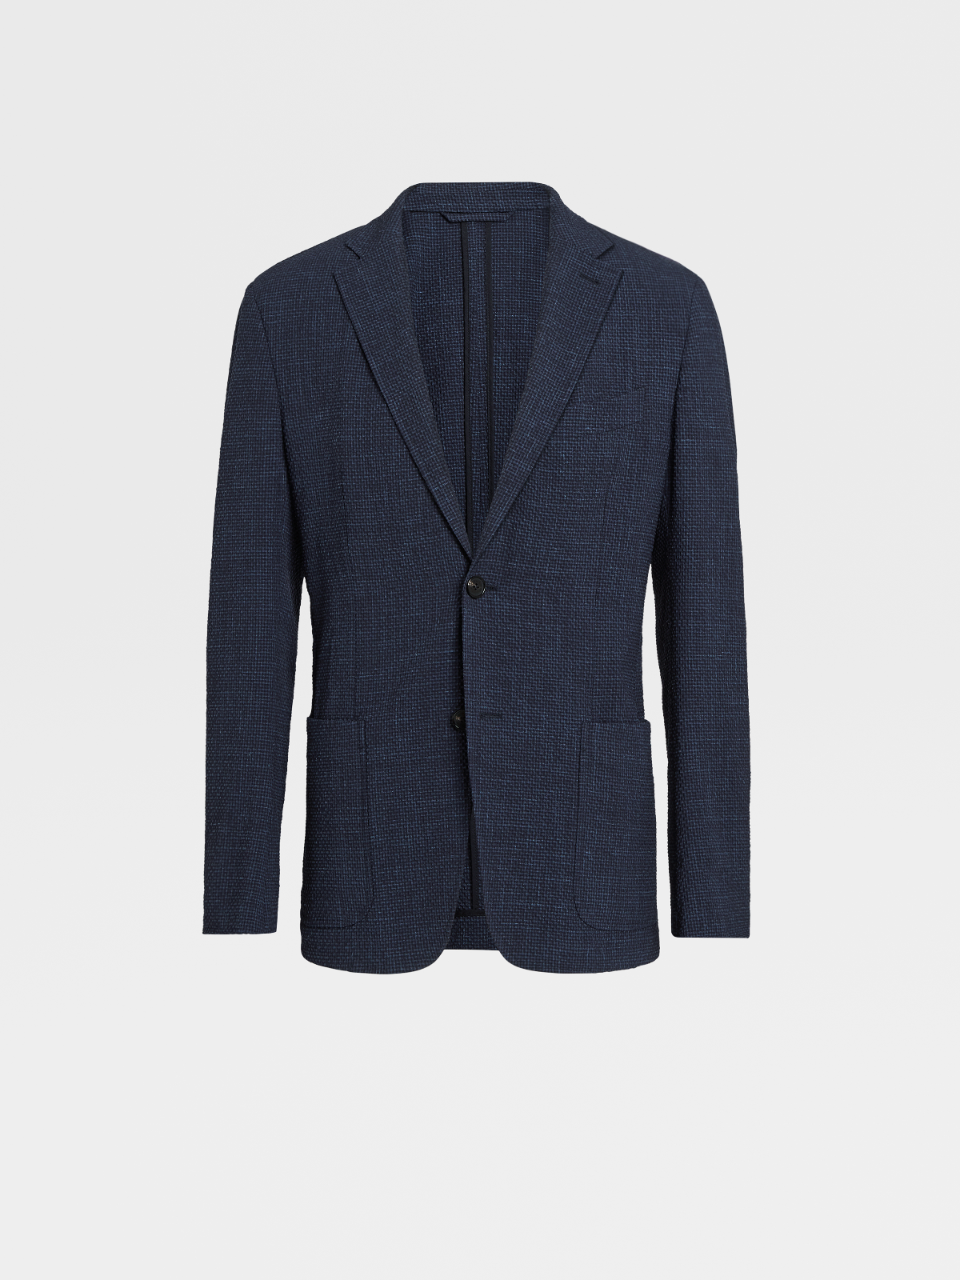 Wool , Silk And Linen Jacket